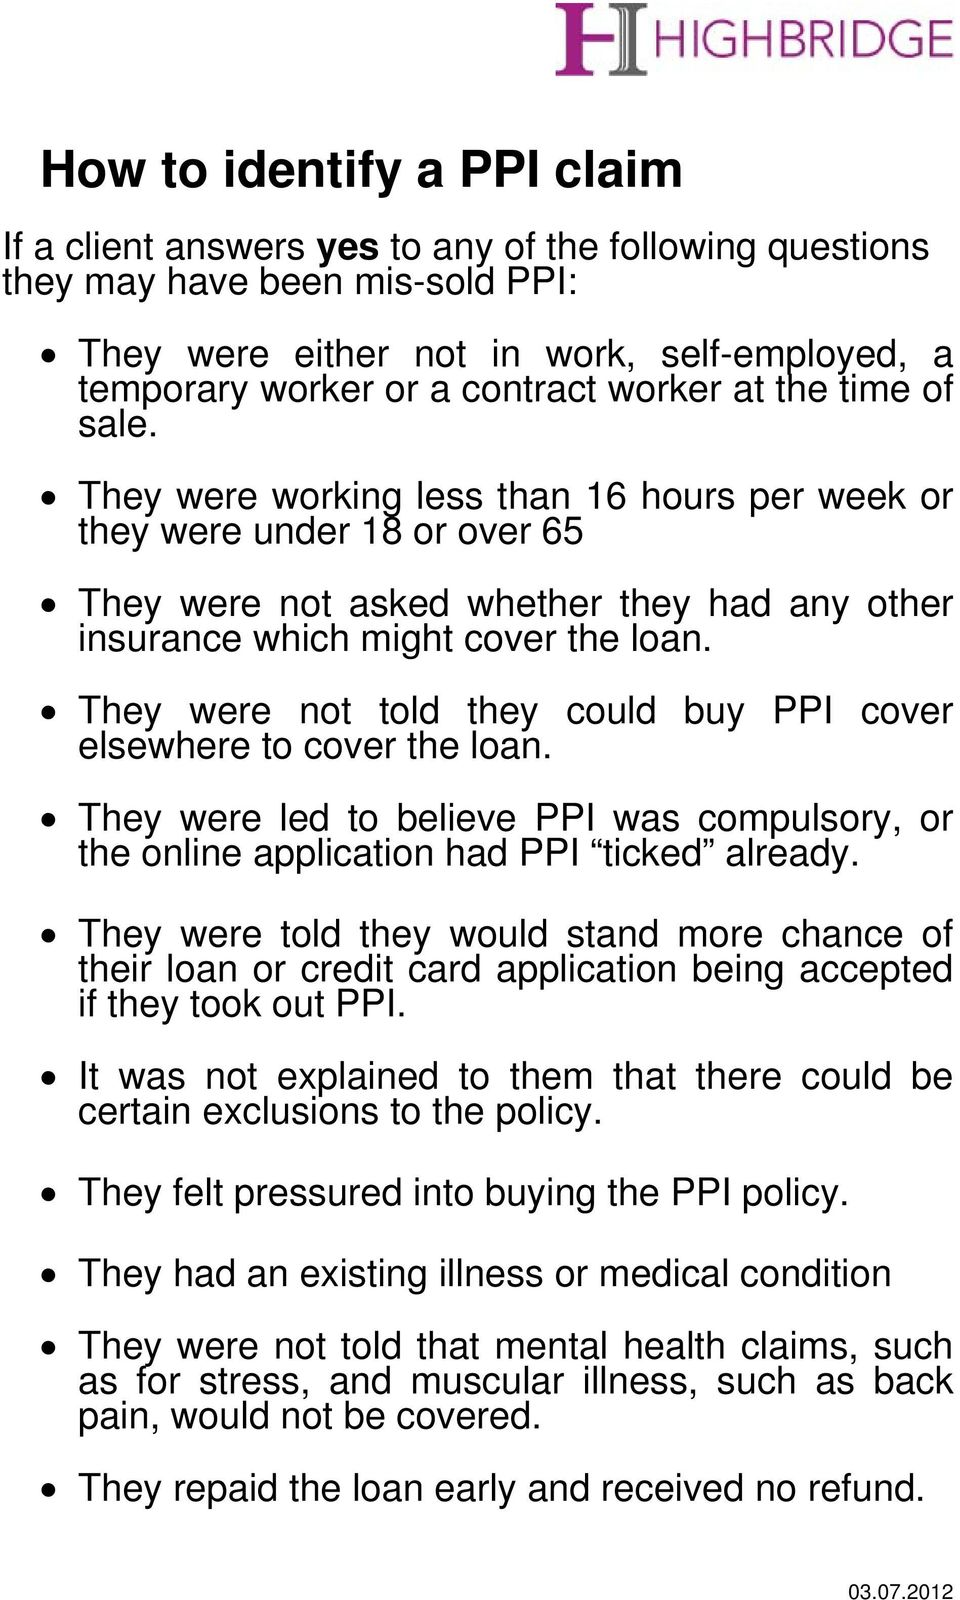 They were not told they could buy PPI cover elsewhere to cover the loan. They were led to believe PPI was compulsory, or the online application had PPI ticked already.